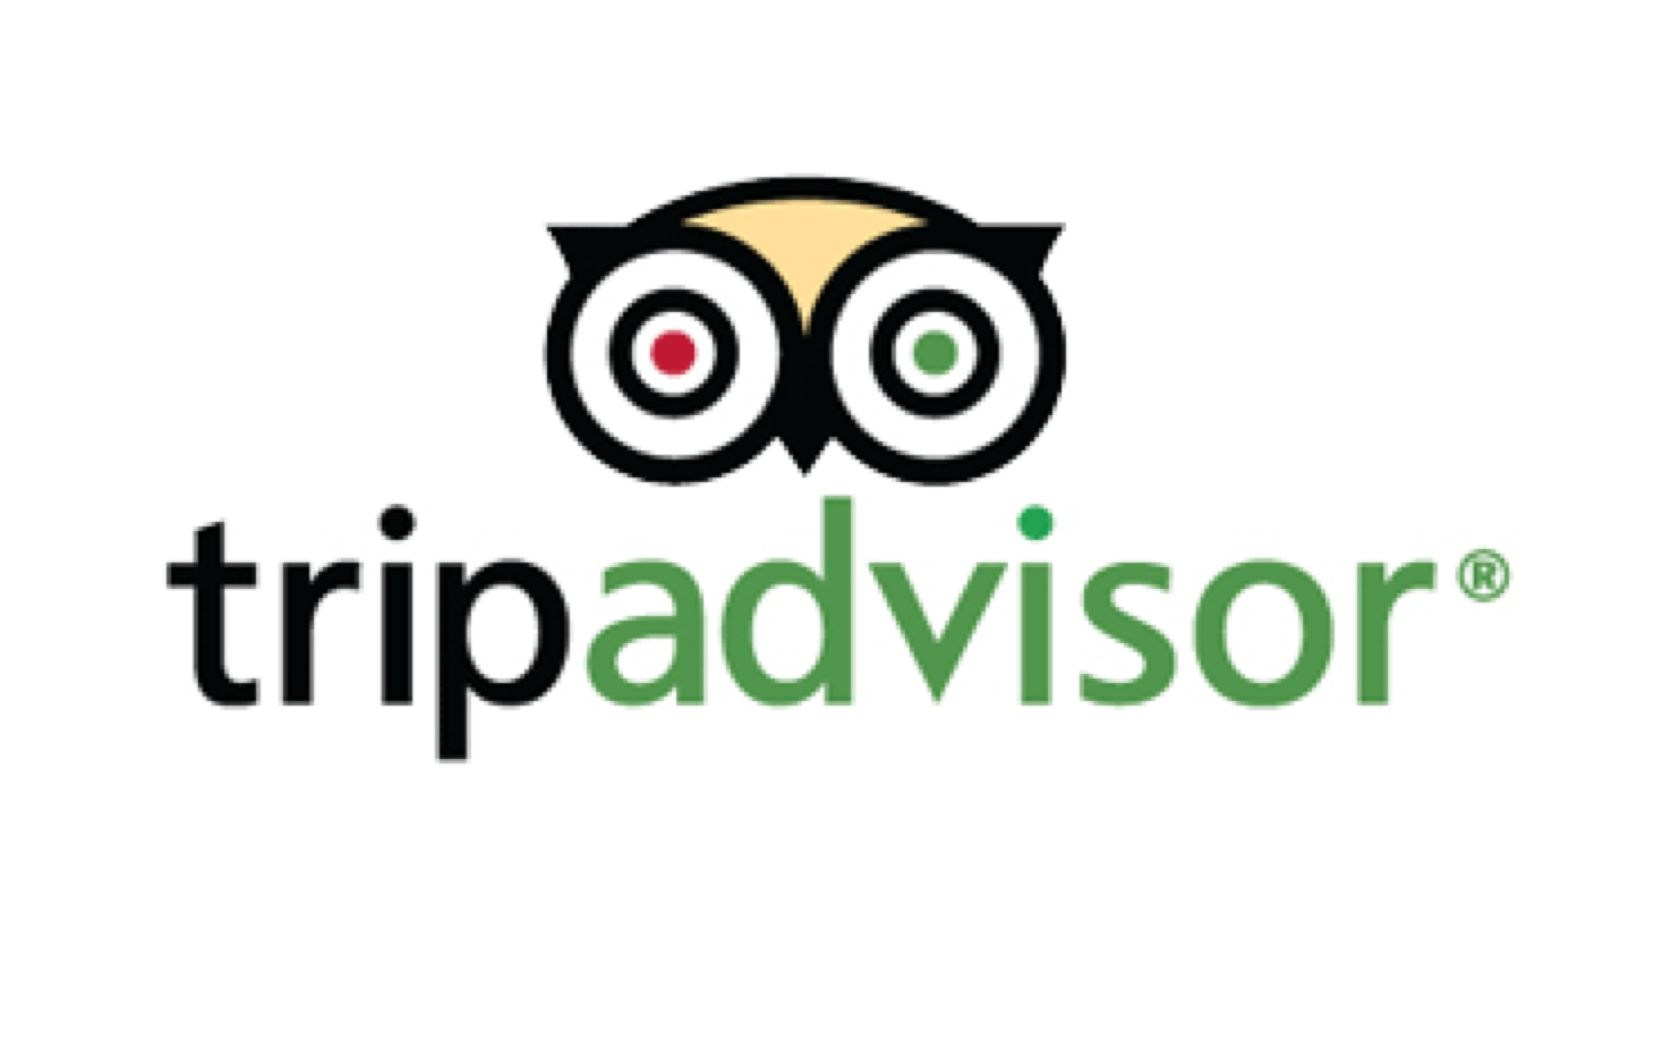 Tripadvisor logo vector download